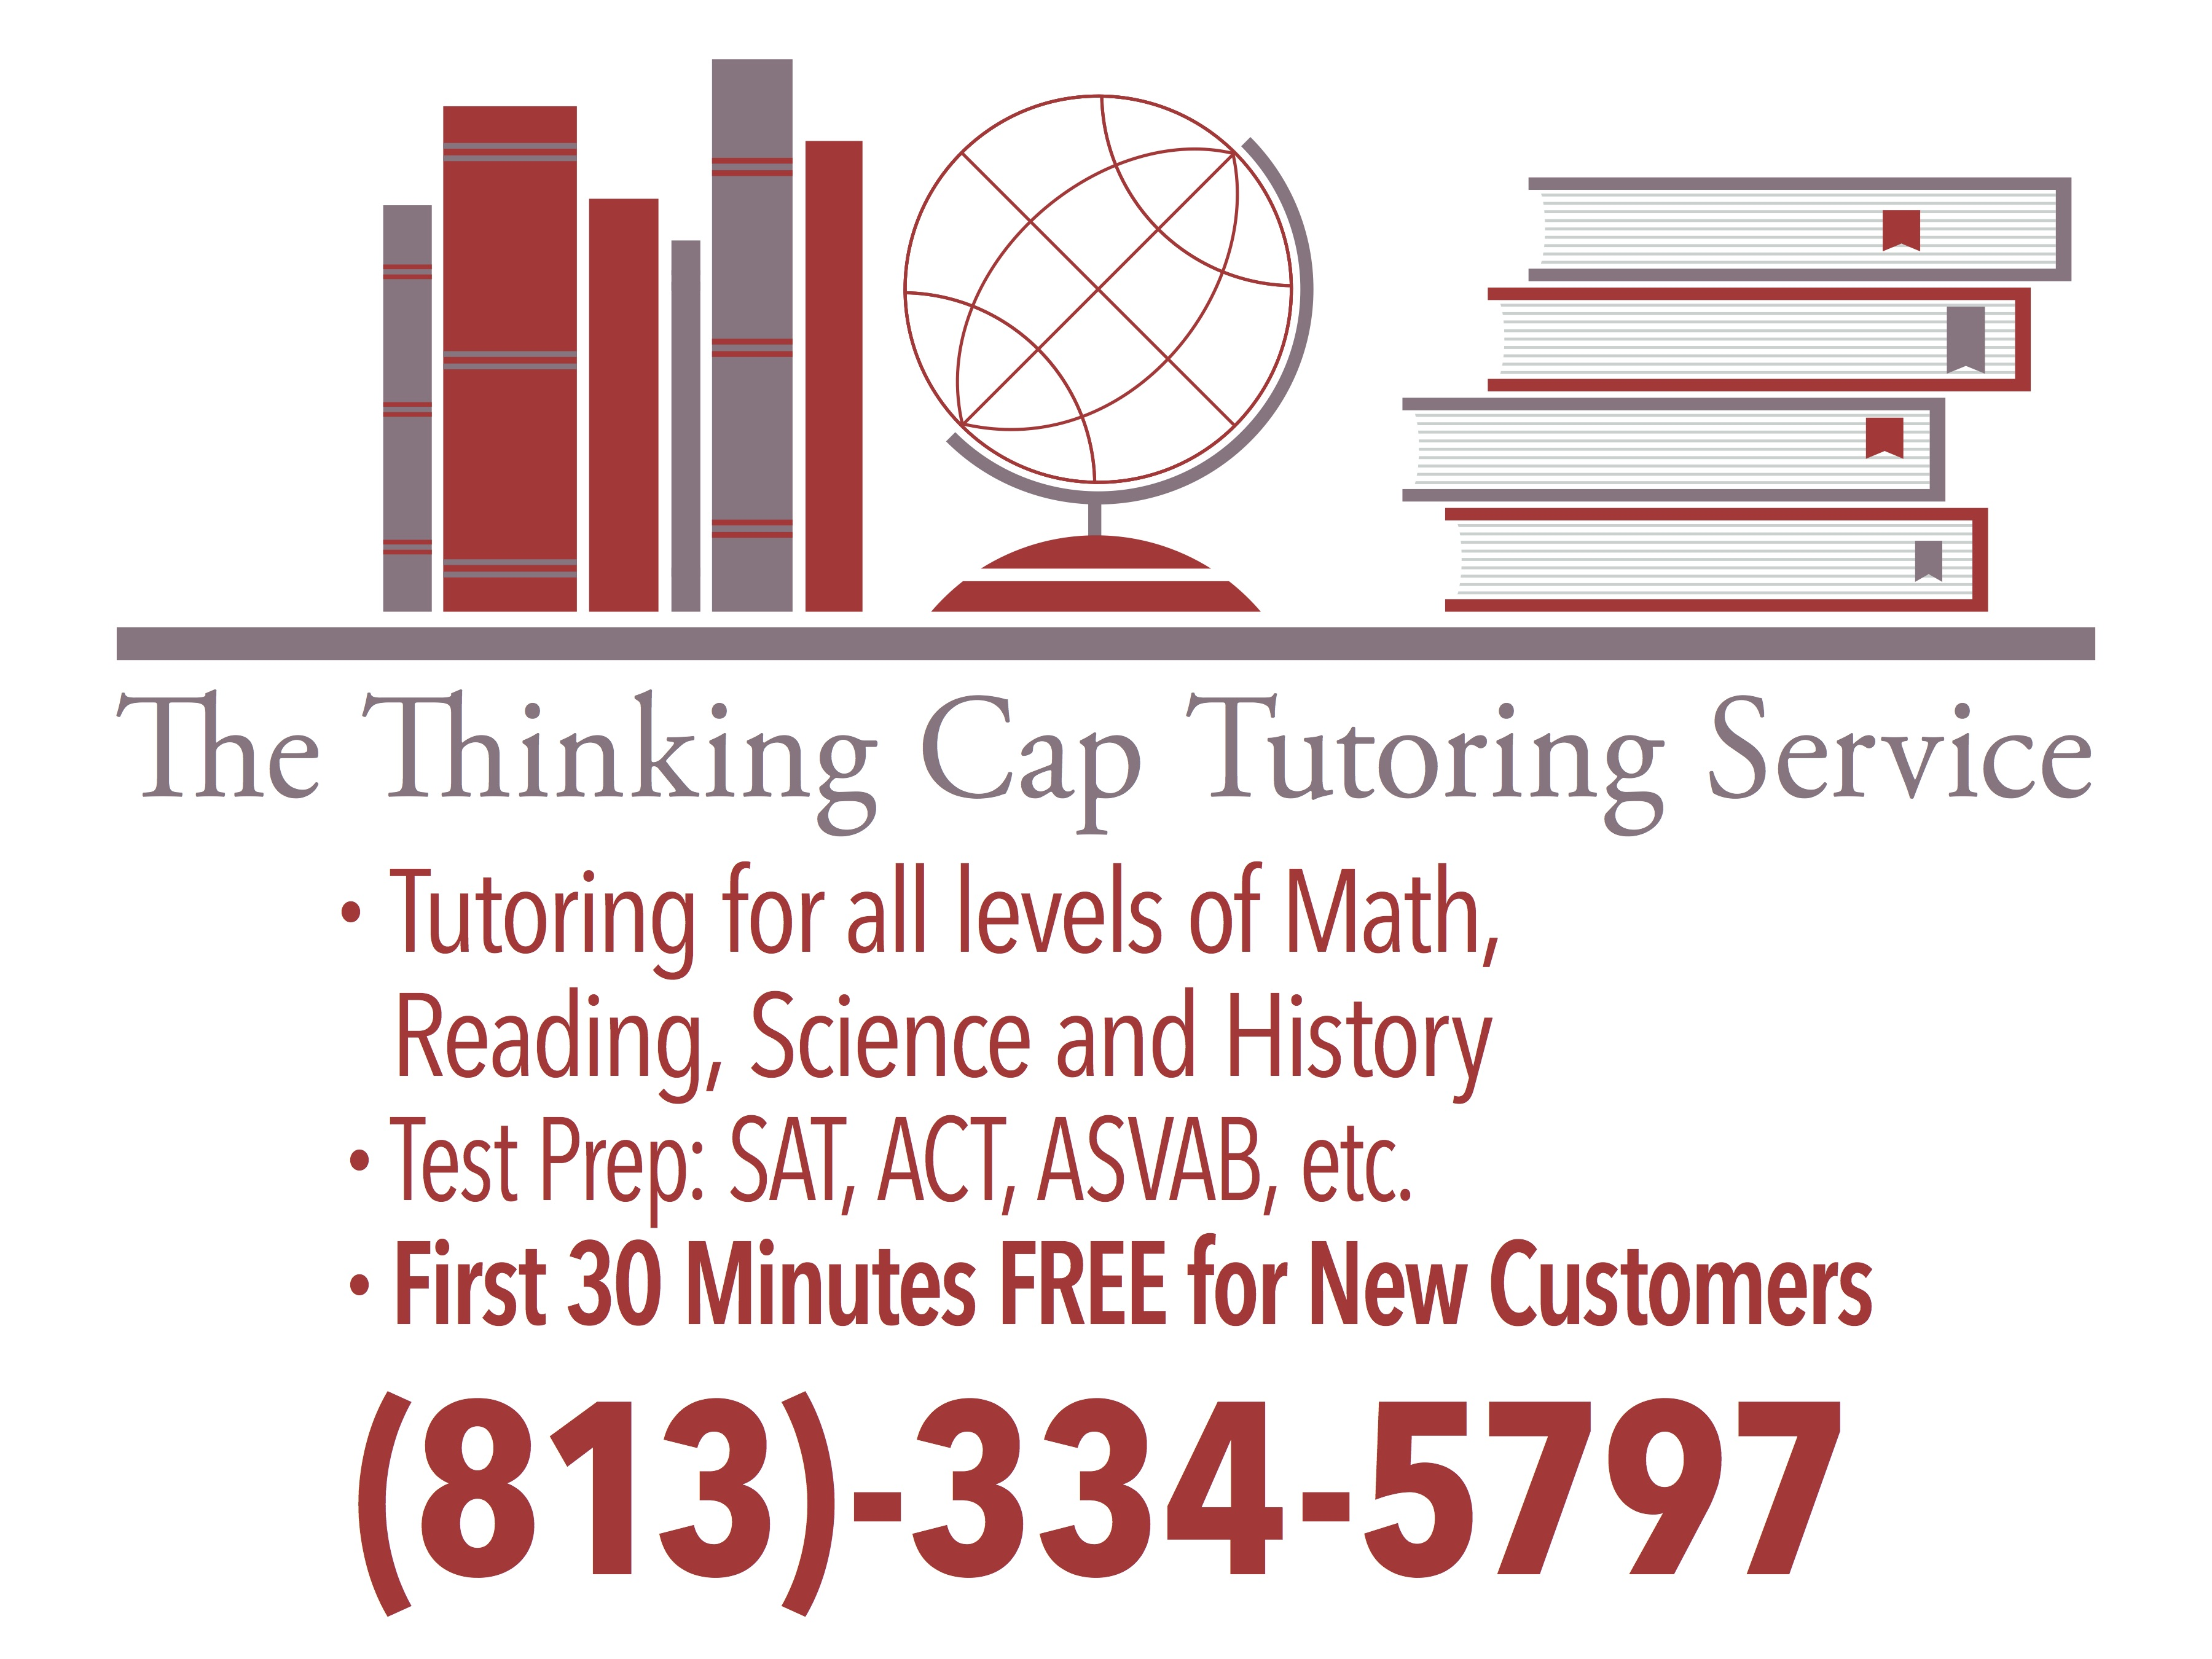 The Thinking Cap Tutoring Services